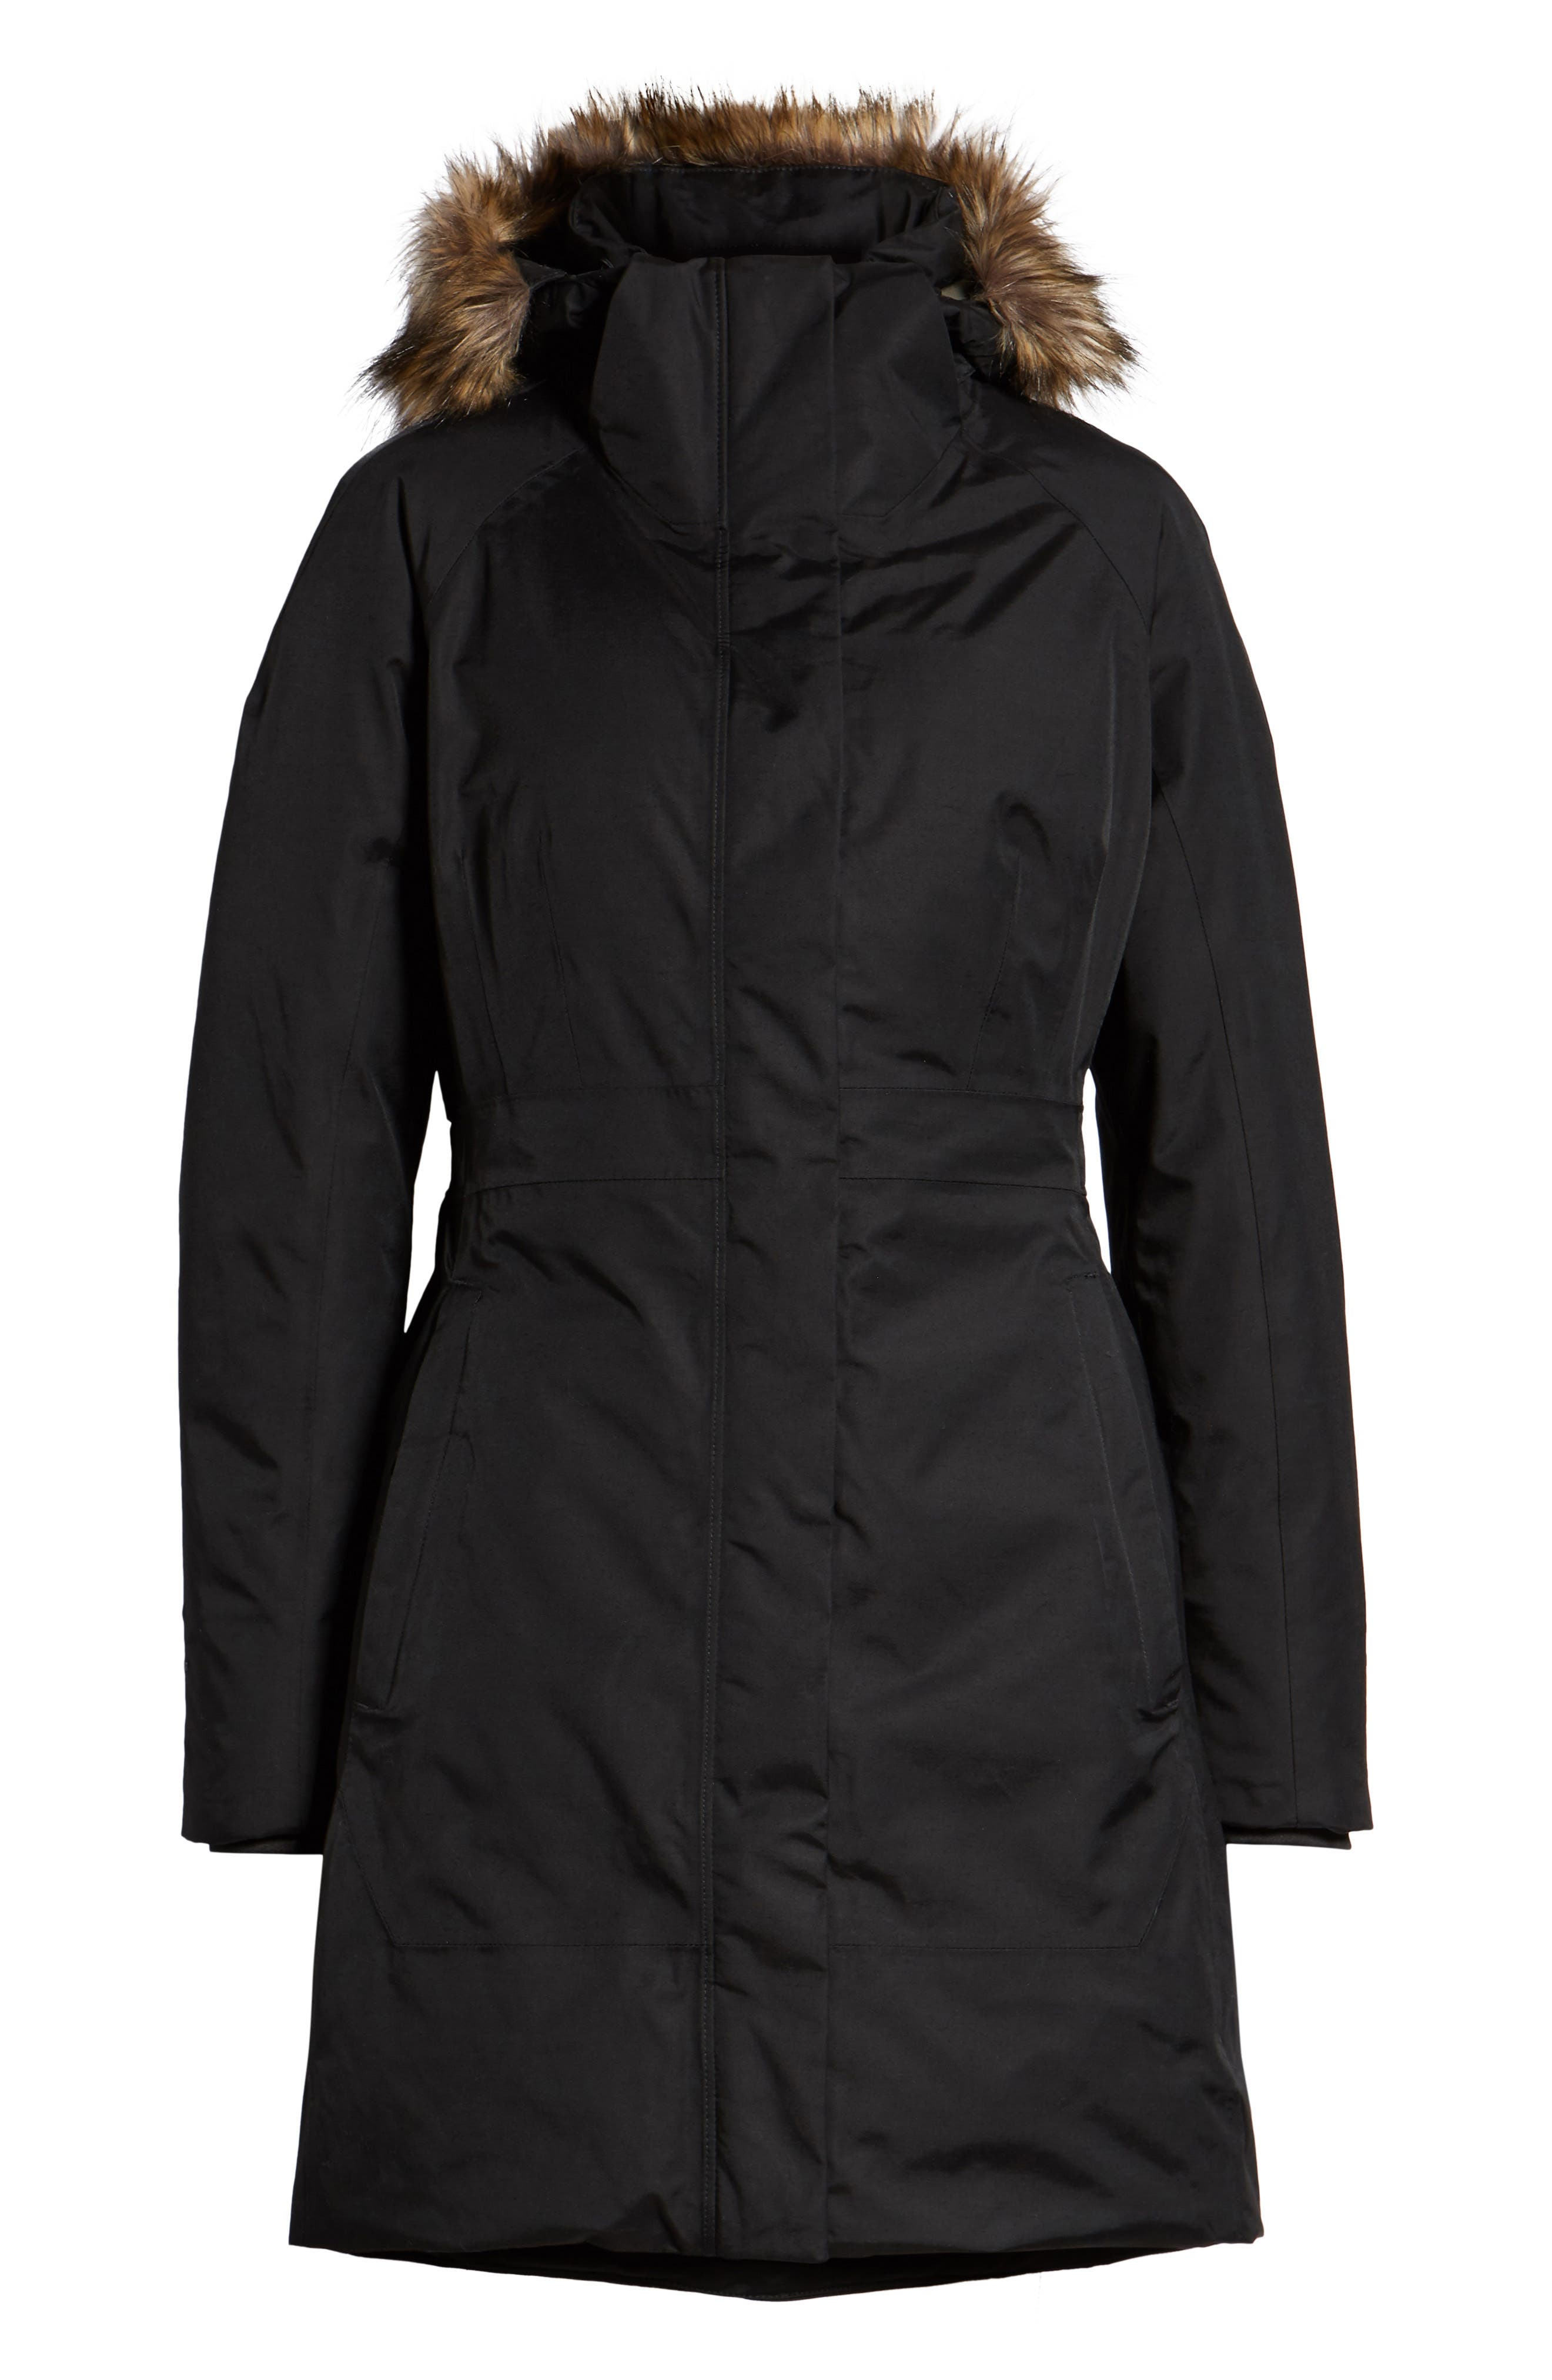 THE NORTH FACE,                             Arctic II Waterproof 550 Fill Power Down Parka with Faux Fur Trim,                             Alternate thumbnail 6, color,                             001